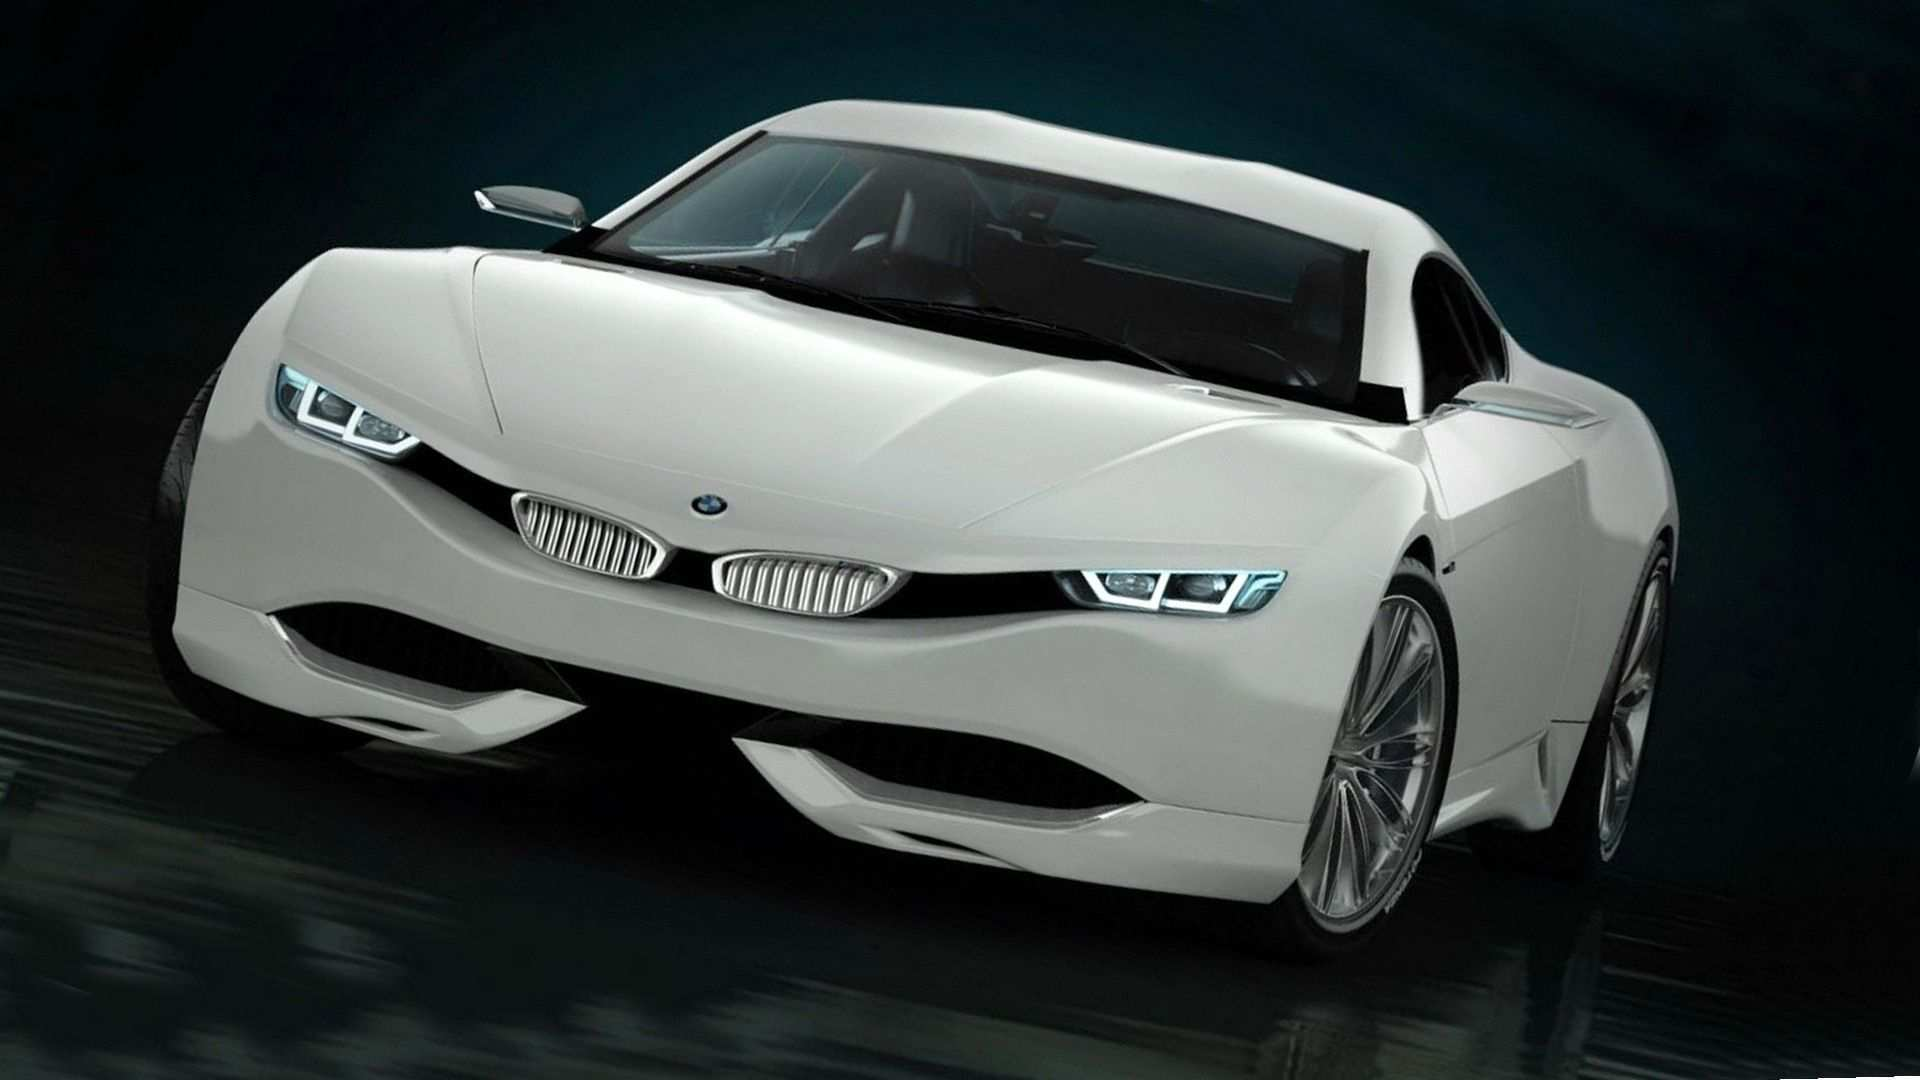 69 Concept of 2020 BMW M9 2020 Style with 2020 BMW M9 2020